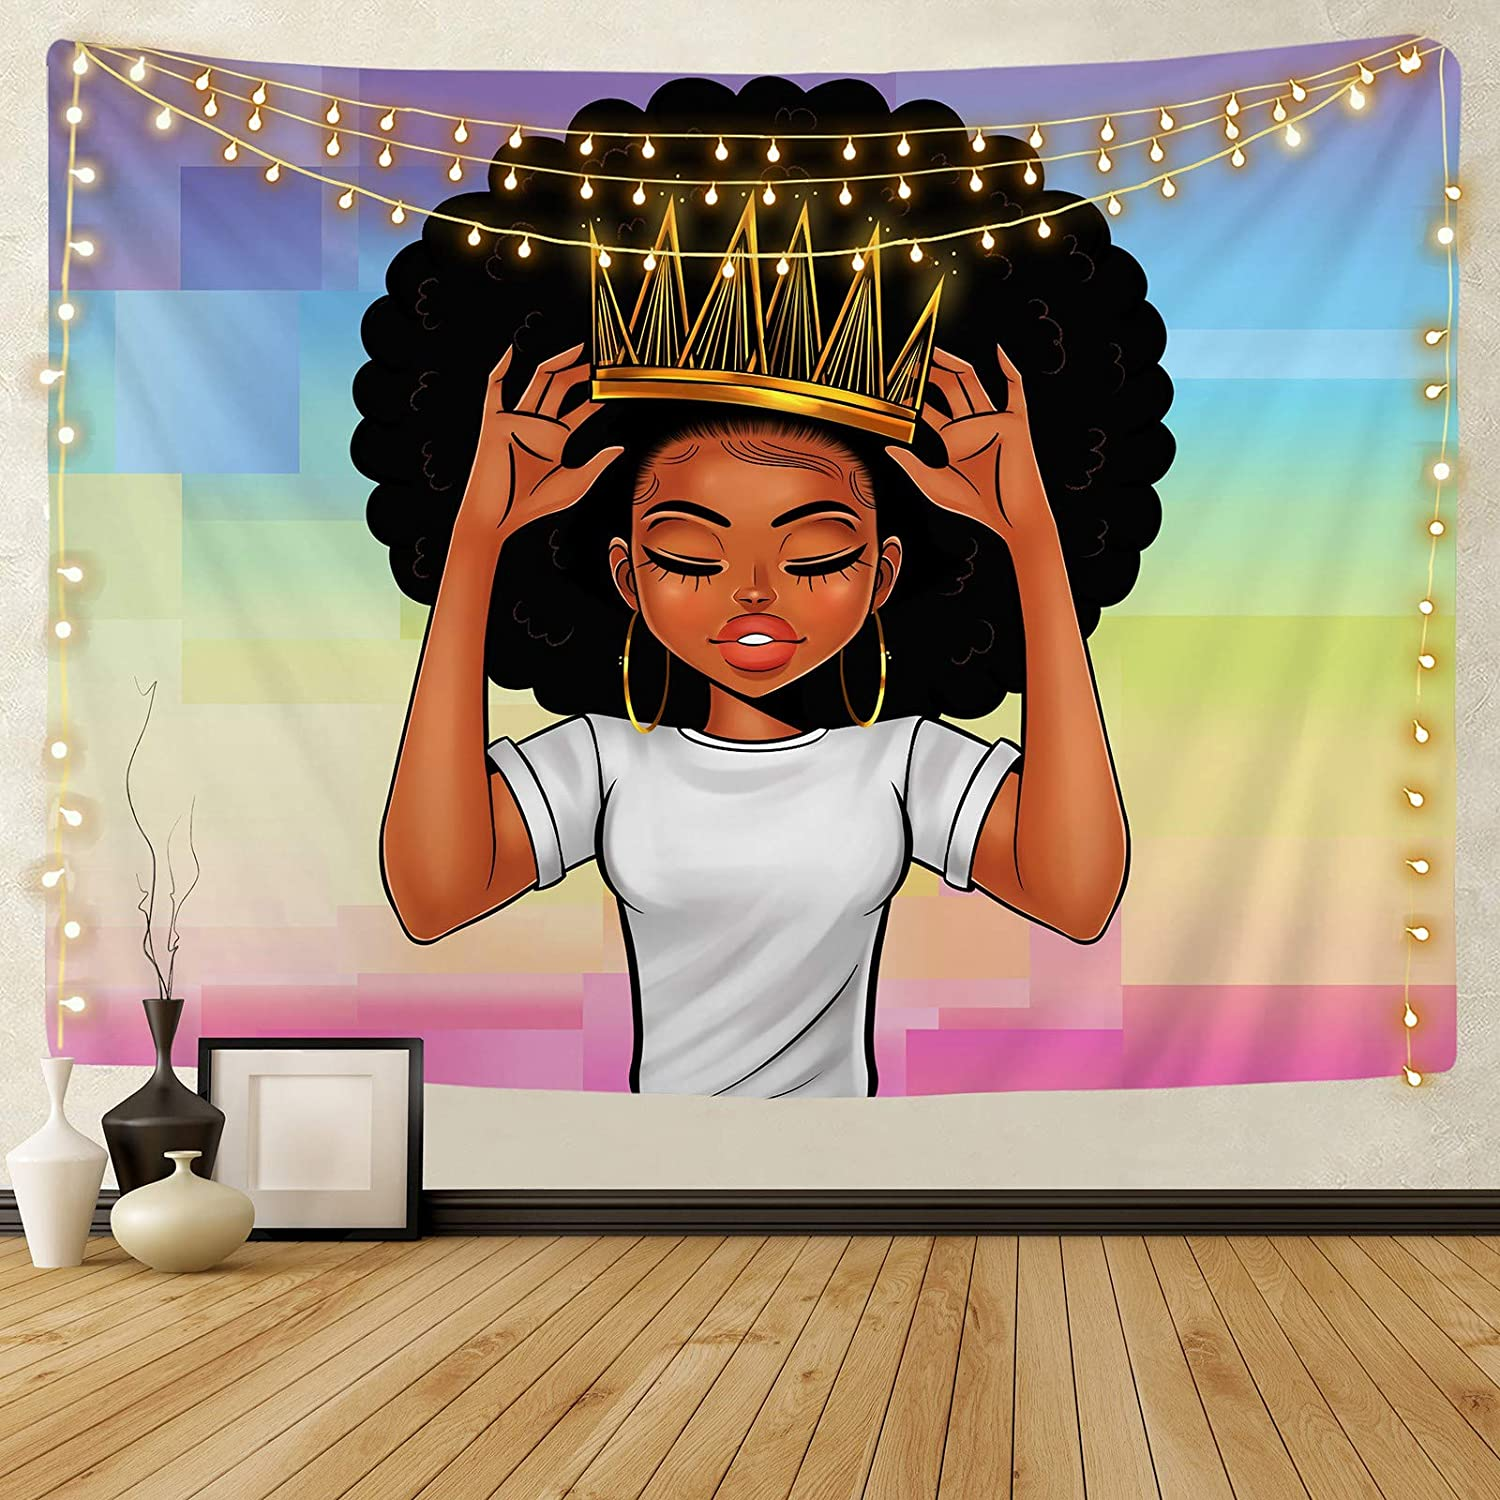 KOYI Black Girl Magic Tapestry African American Women Girl with Crown Wall Tapestry Afro Girls Black Queen Princess Wall Hanging Wall Art 51.2ʺ L × 59.1ʺ W Inches for Bedroom Living Room Dorm Room